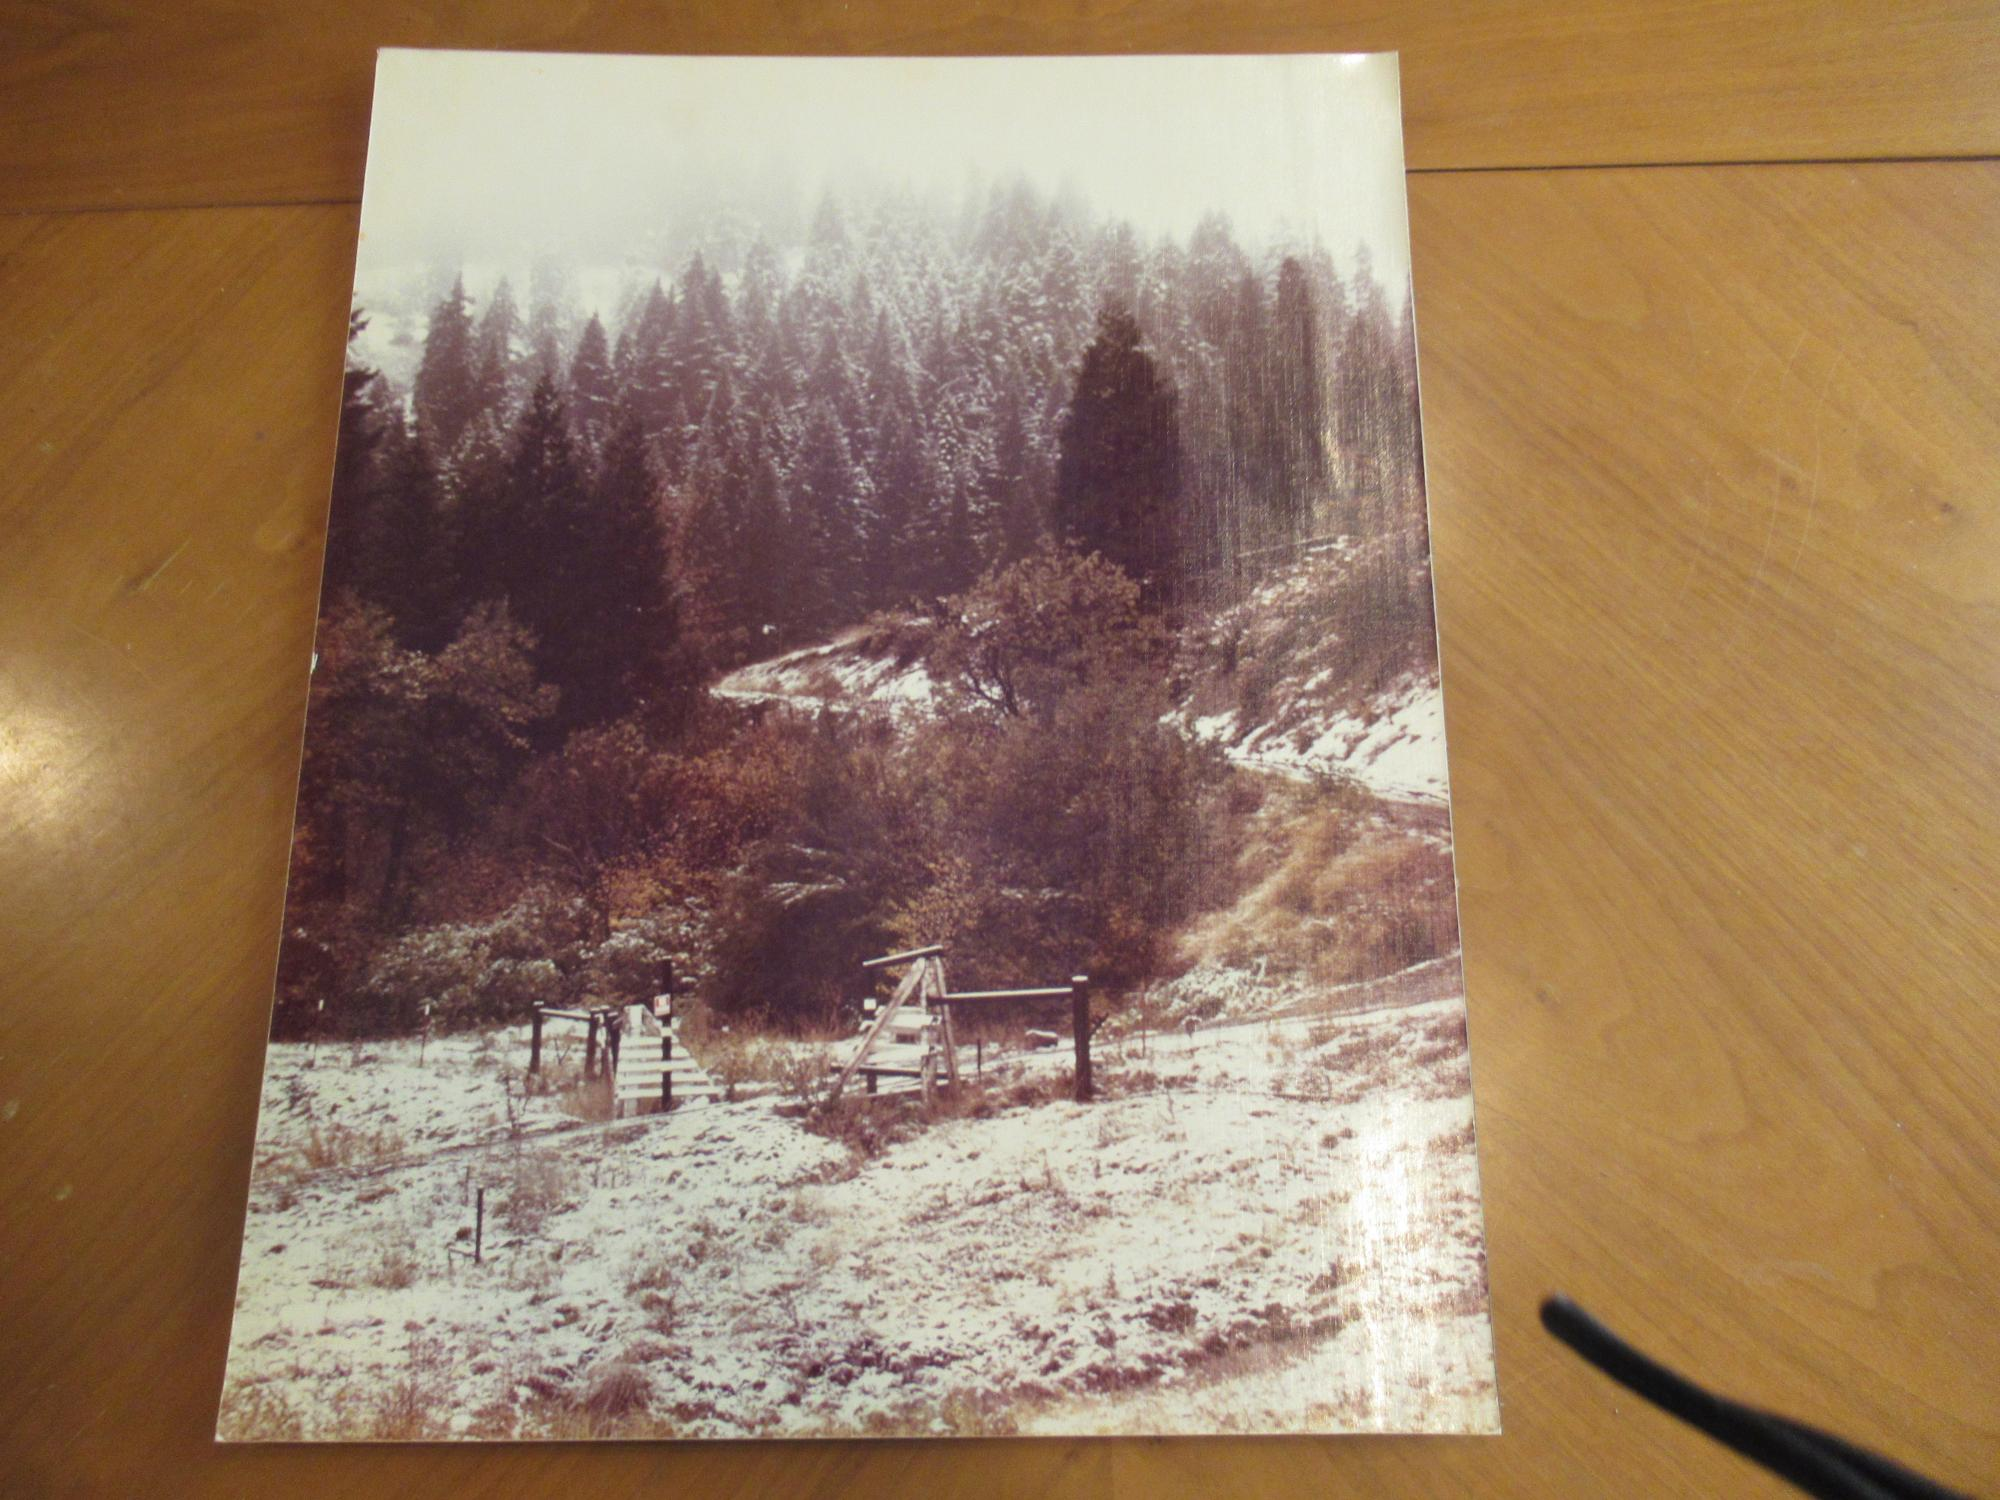 Large Original Photograph Of Cattle Crossing Guard In Mountain Forest Sharon Lumbard